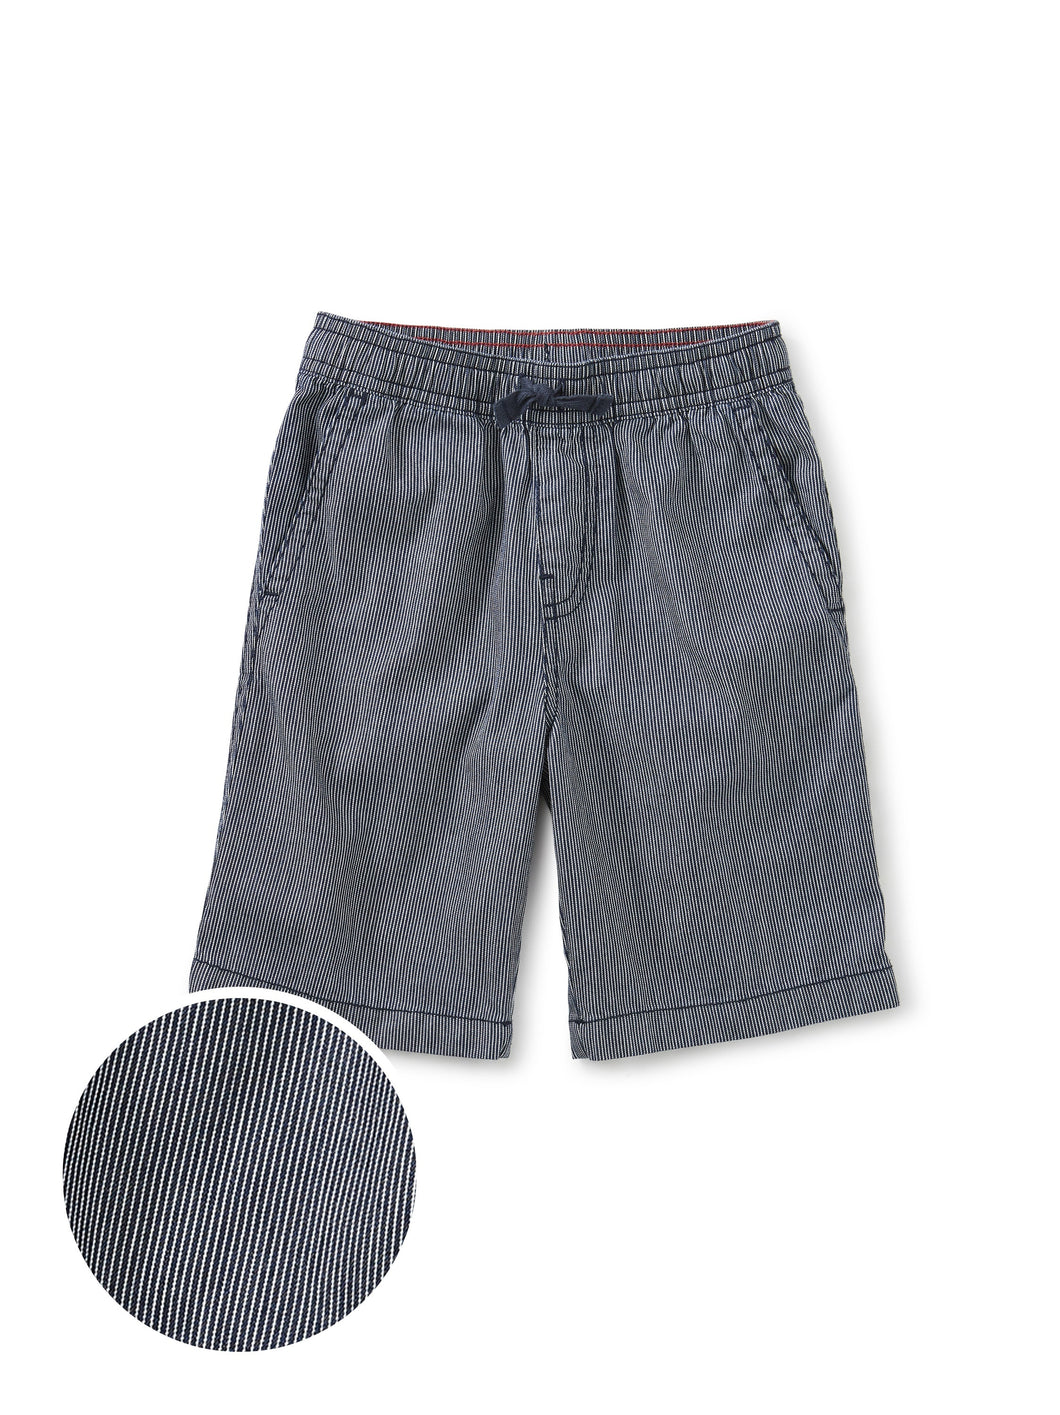 Tea Collection Railroad Stripe Discovery Short